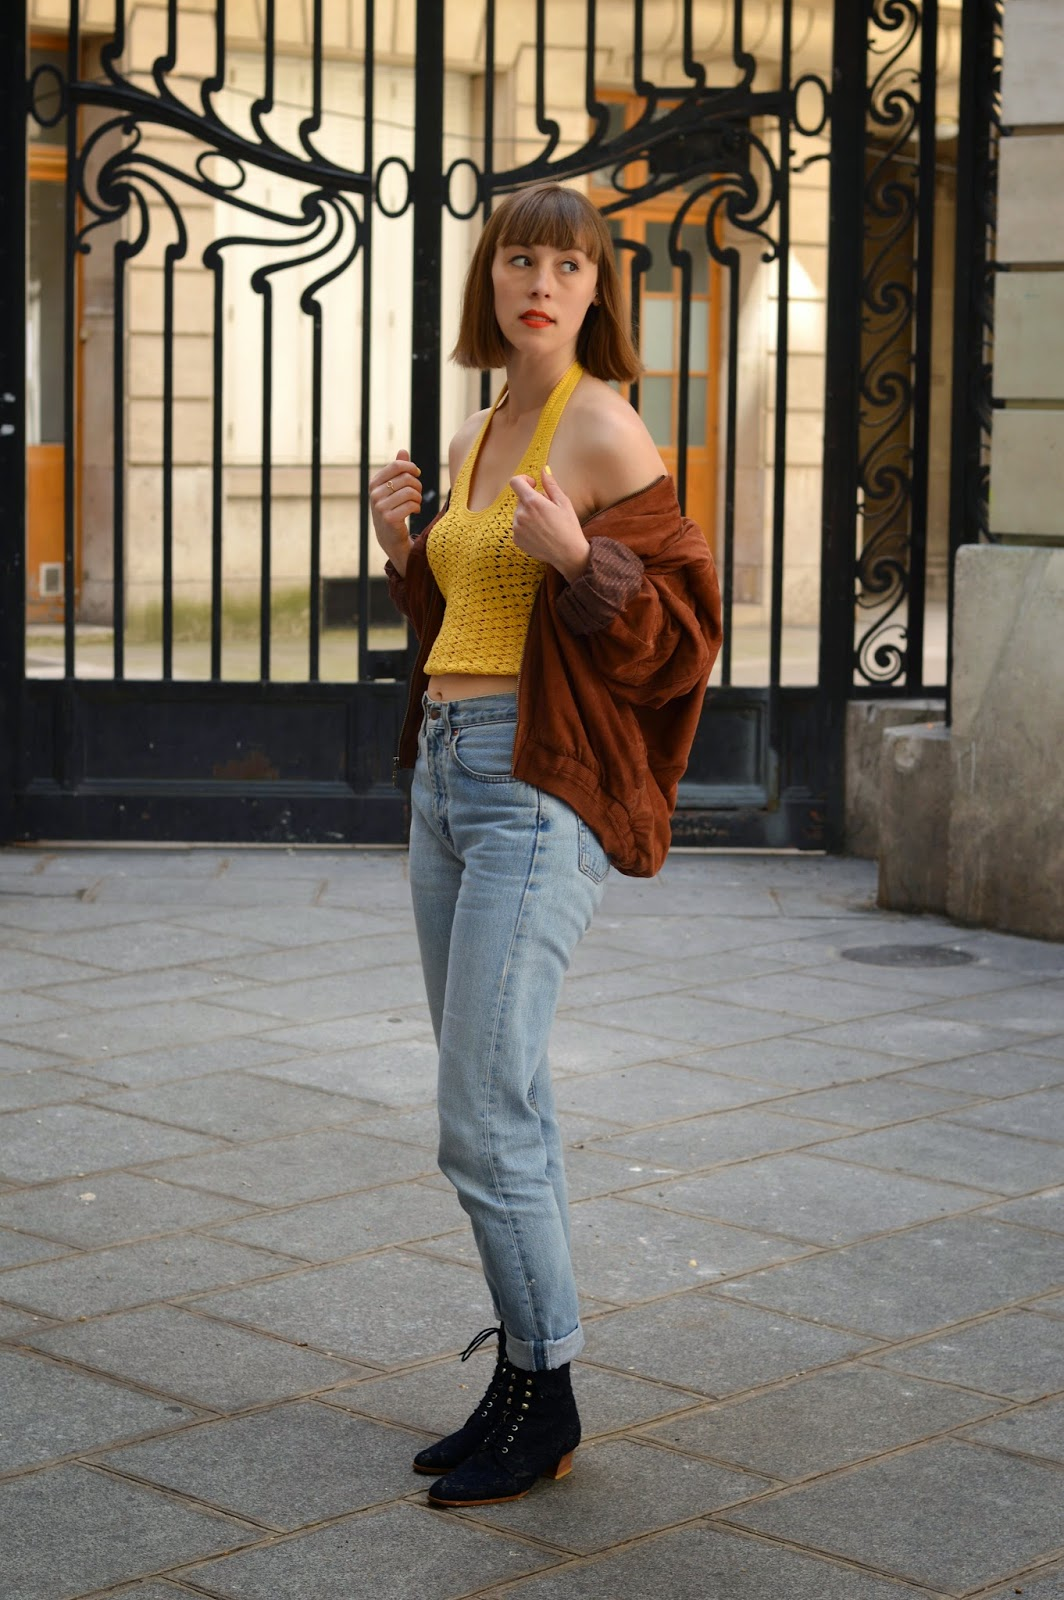 Key ss15 trends crochet, 501 levis jeans and suede jacket